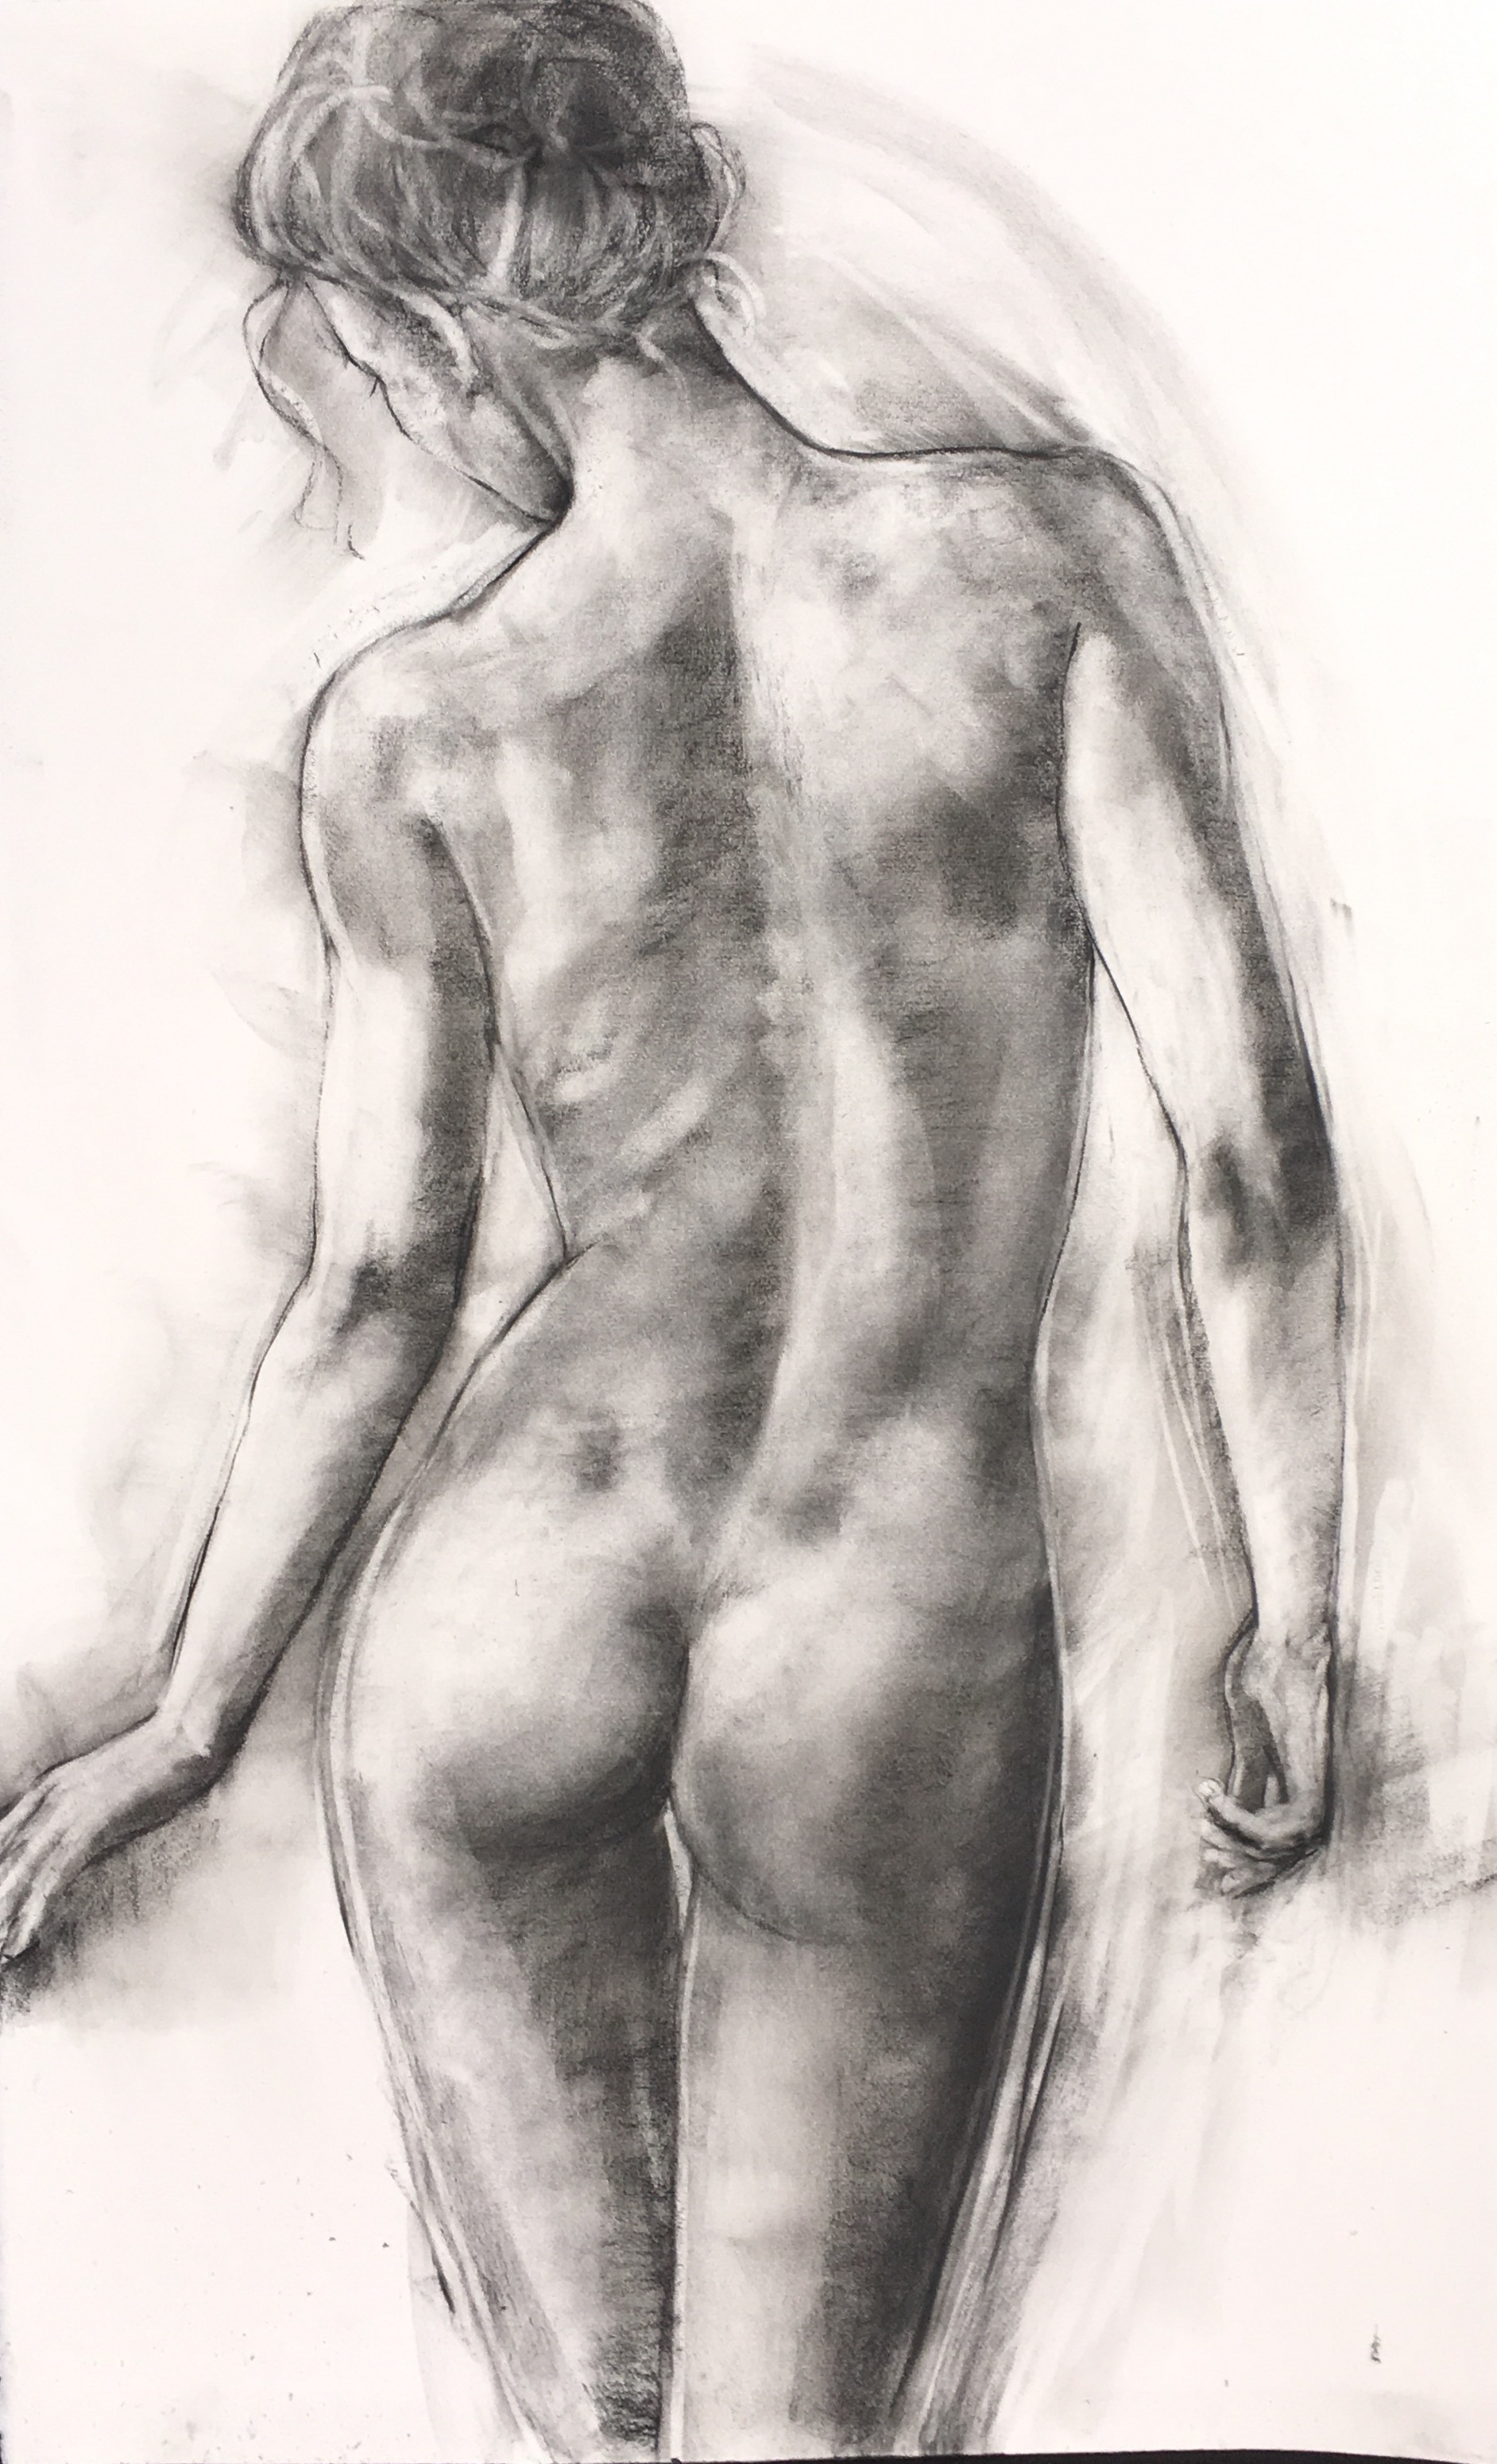 "'Beauty' charcoal and pastel on paper 39"" x 25"" £2,200"